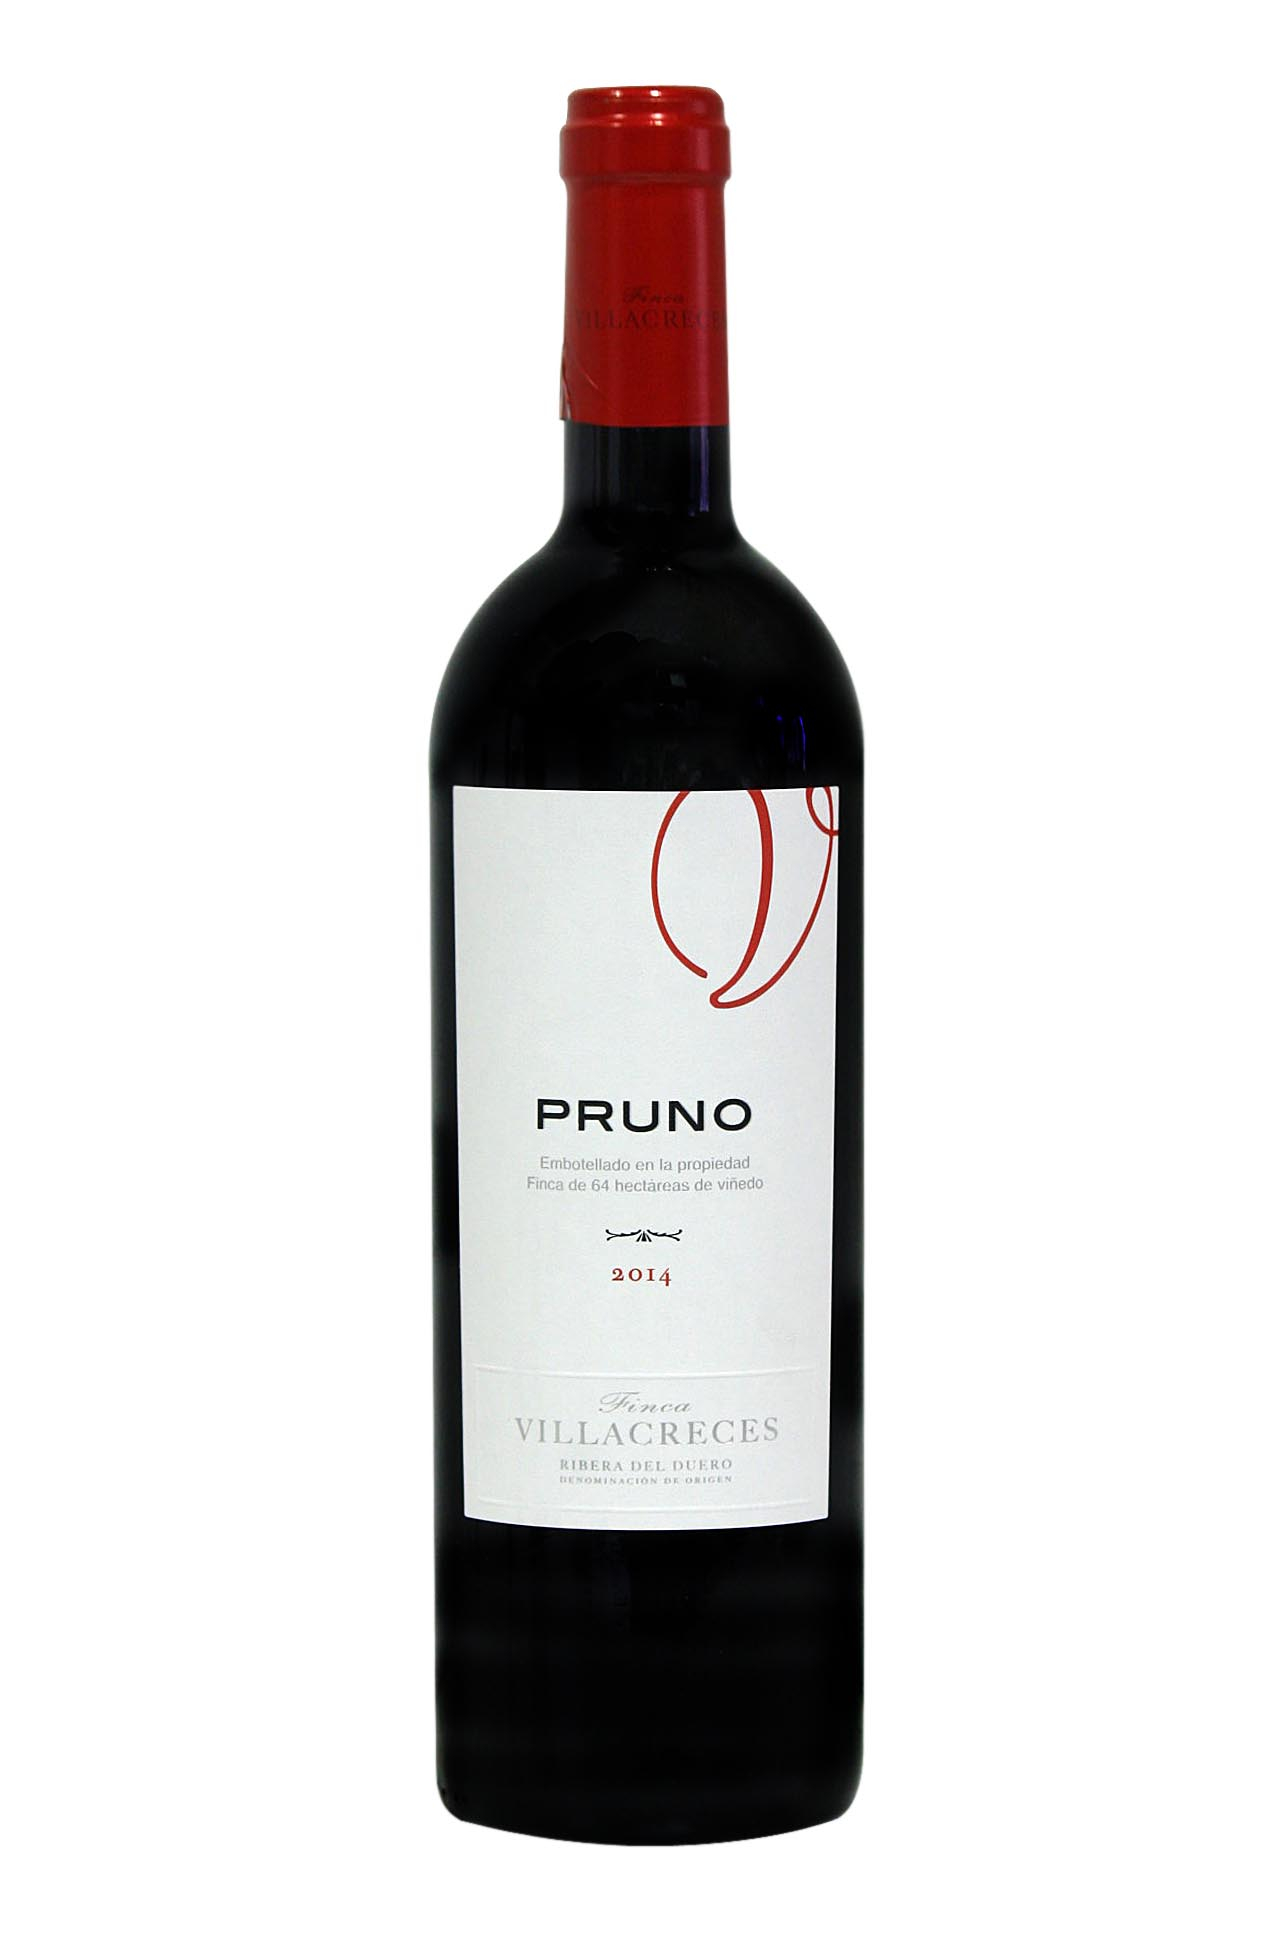 Pruno red wine